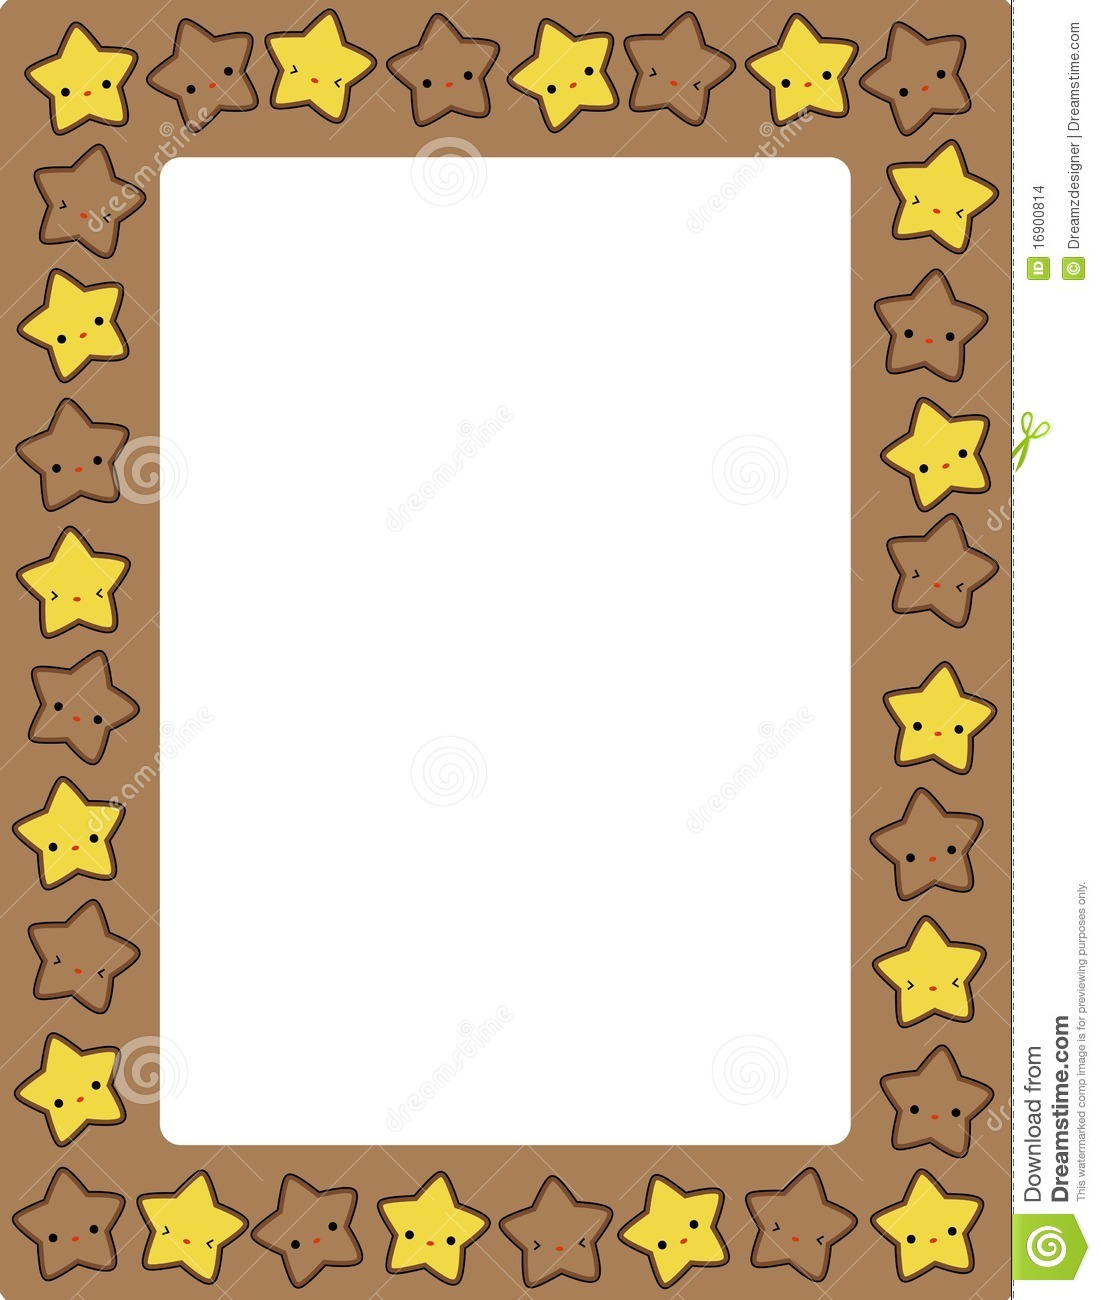 Star / stars border stock vector. Image of birth, card ...